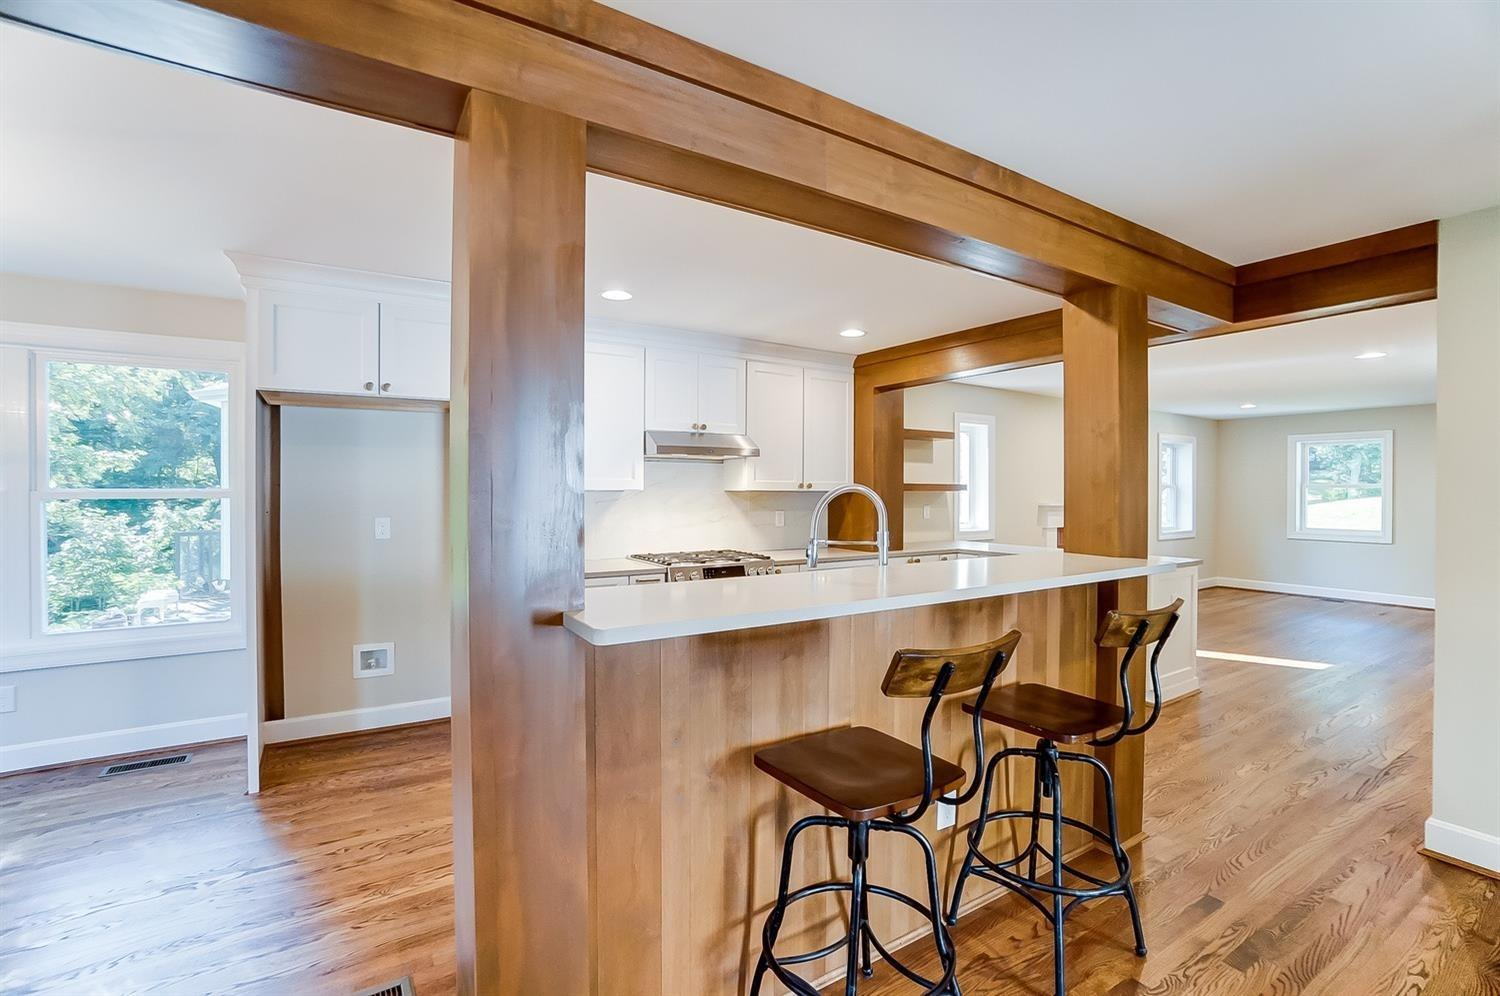 1st floor, kitchen view from back of home with breakfast bar visible. Beams artfully provide structural support while keeping a sense of modern farmhouse at play here.